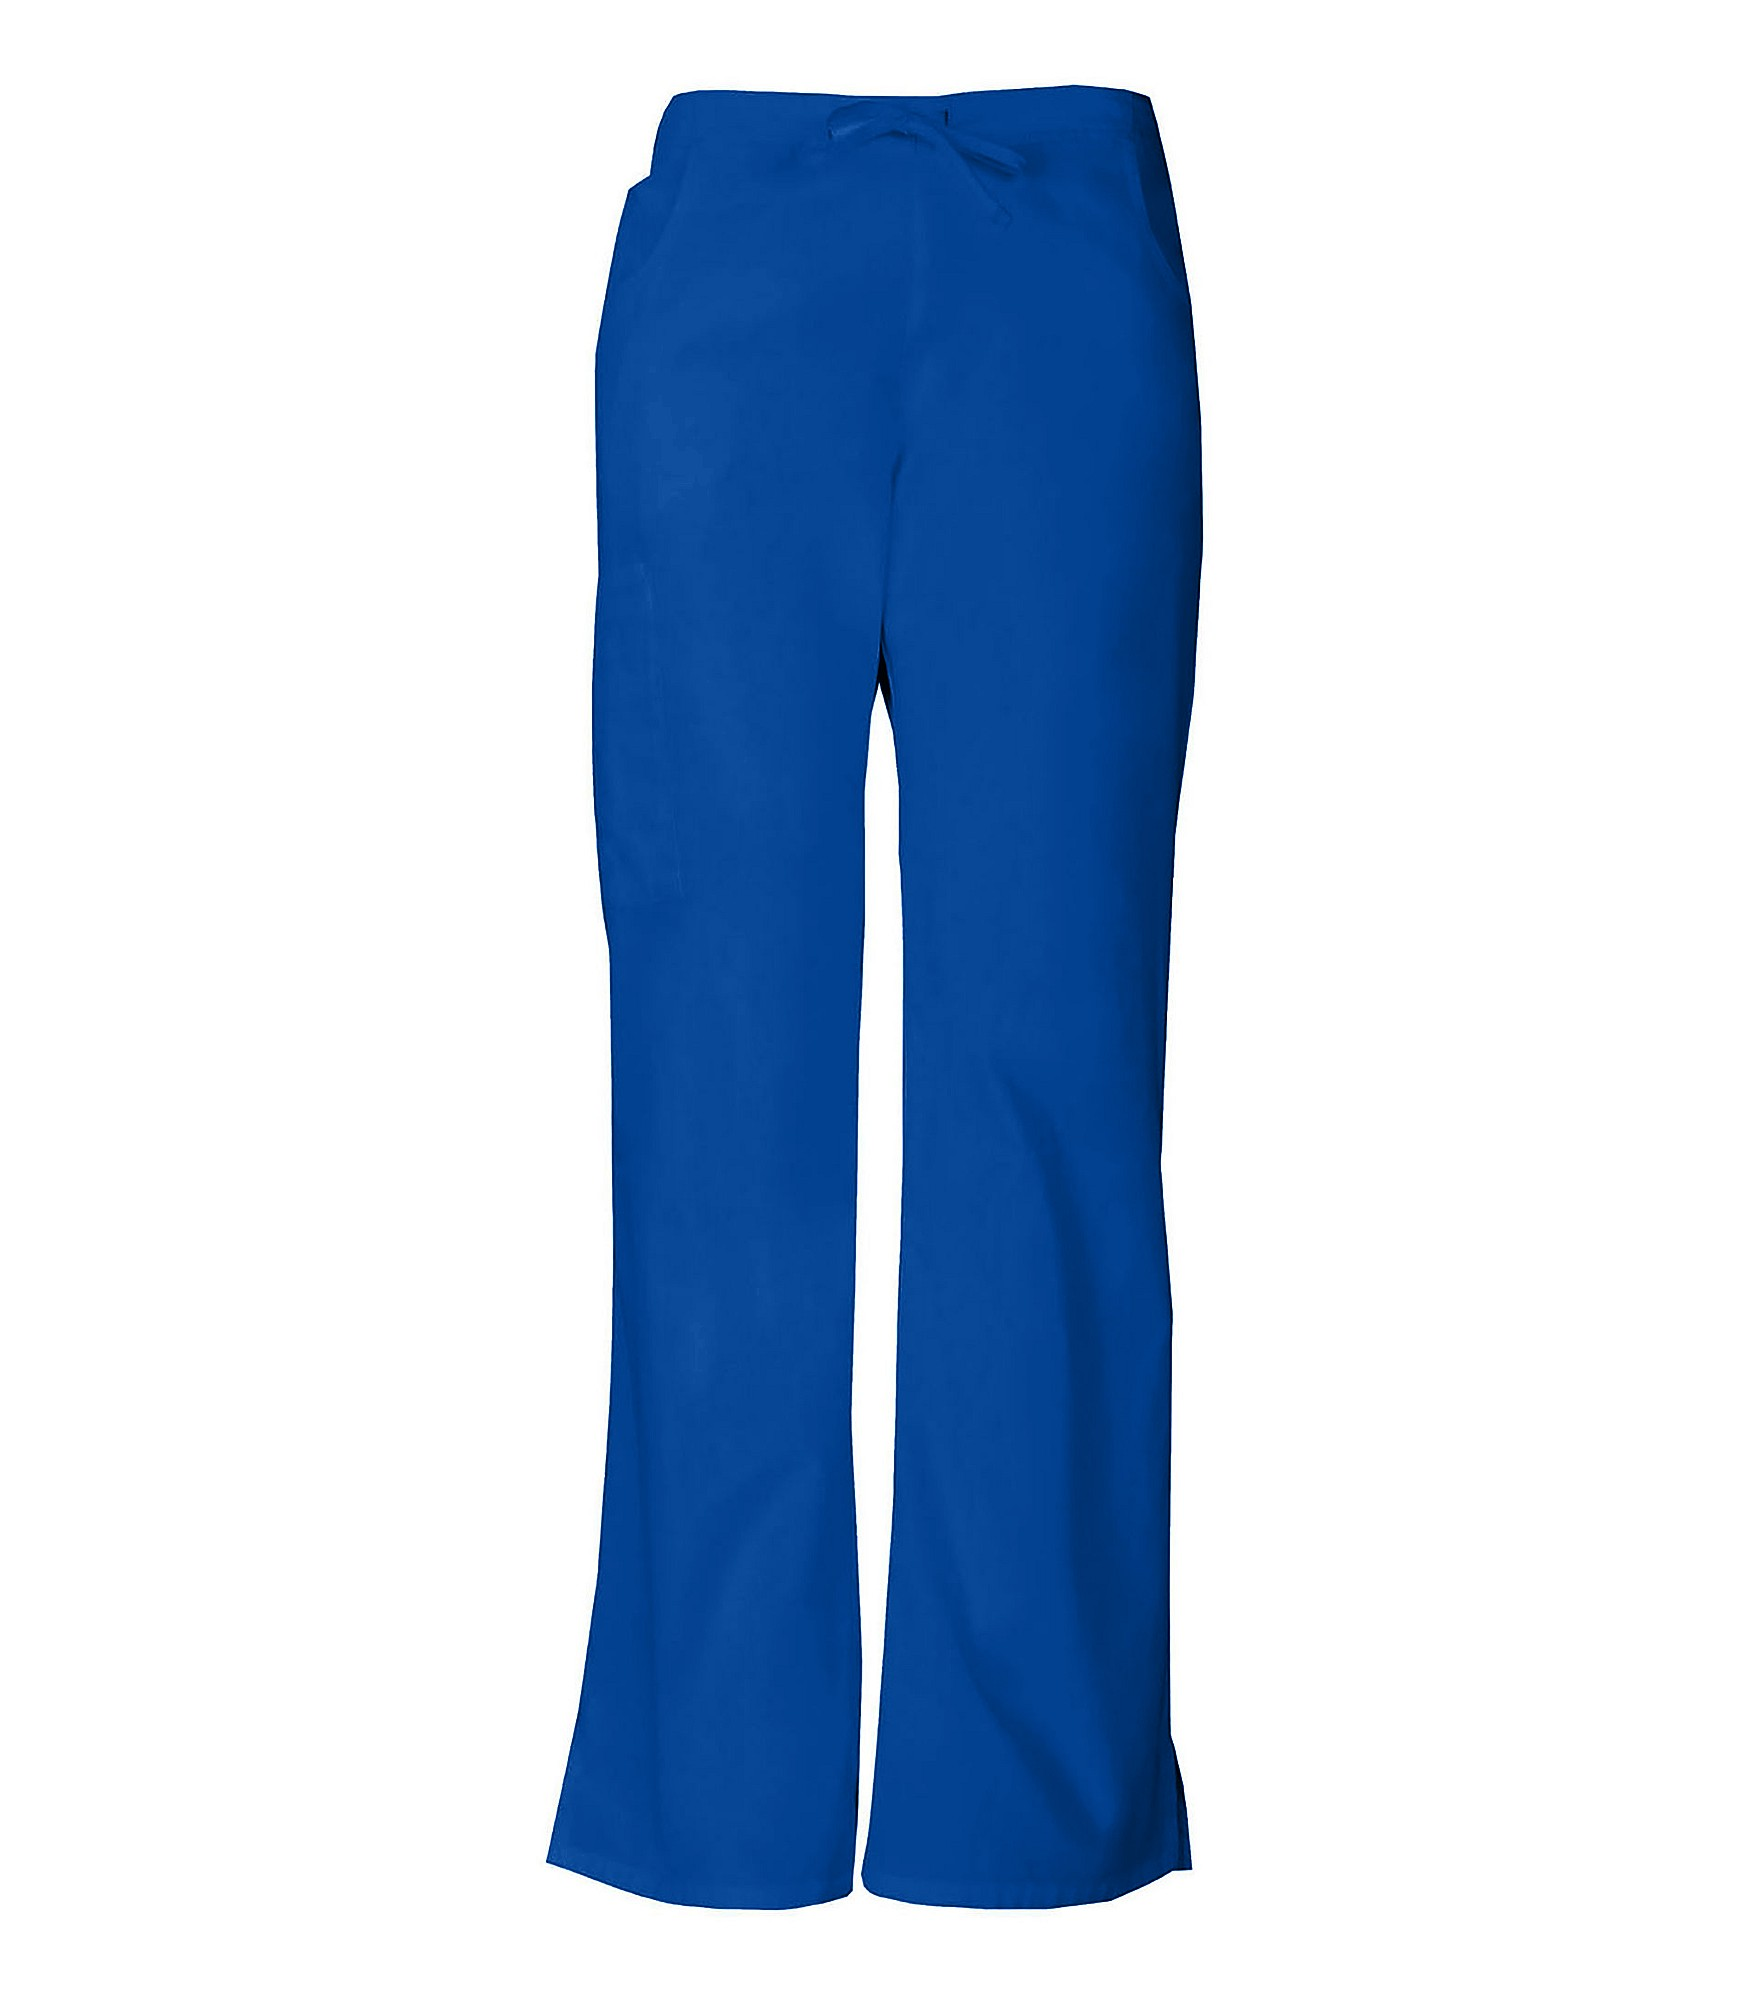 e6655bee79b ... Dickies® EDS Signature Ladies Classic fit Mid Rise Drawstring Cargo  Pant. Zoom. Loading zoom